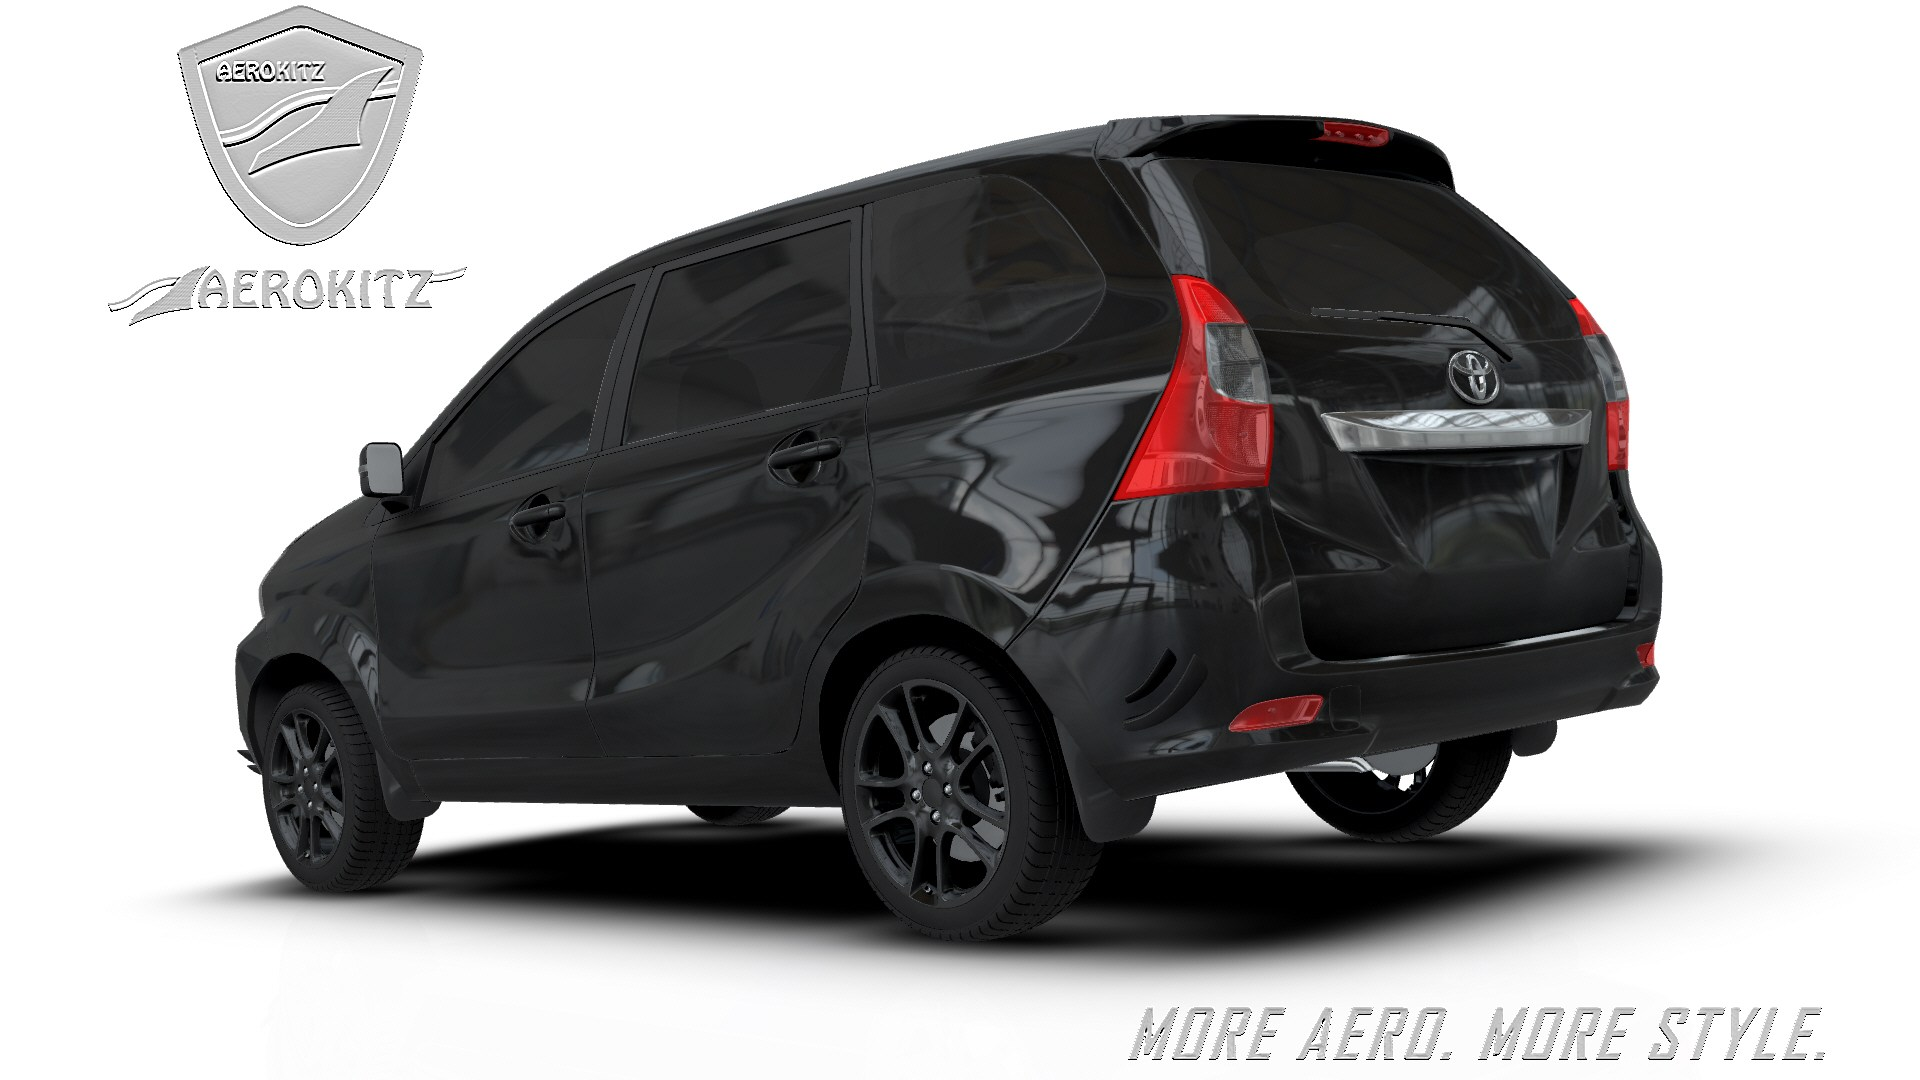 aksesoris grand new avanza veloz aerokitz modifikasi toyota racing style rear